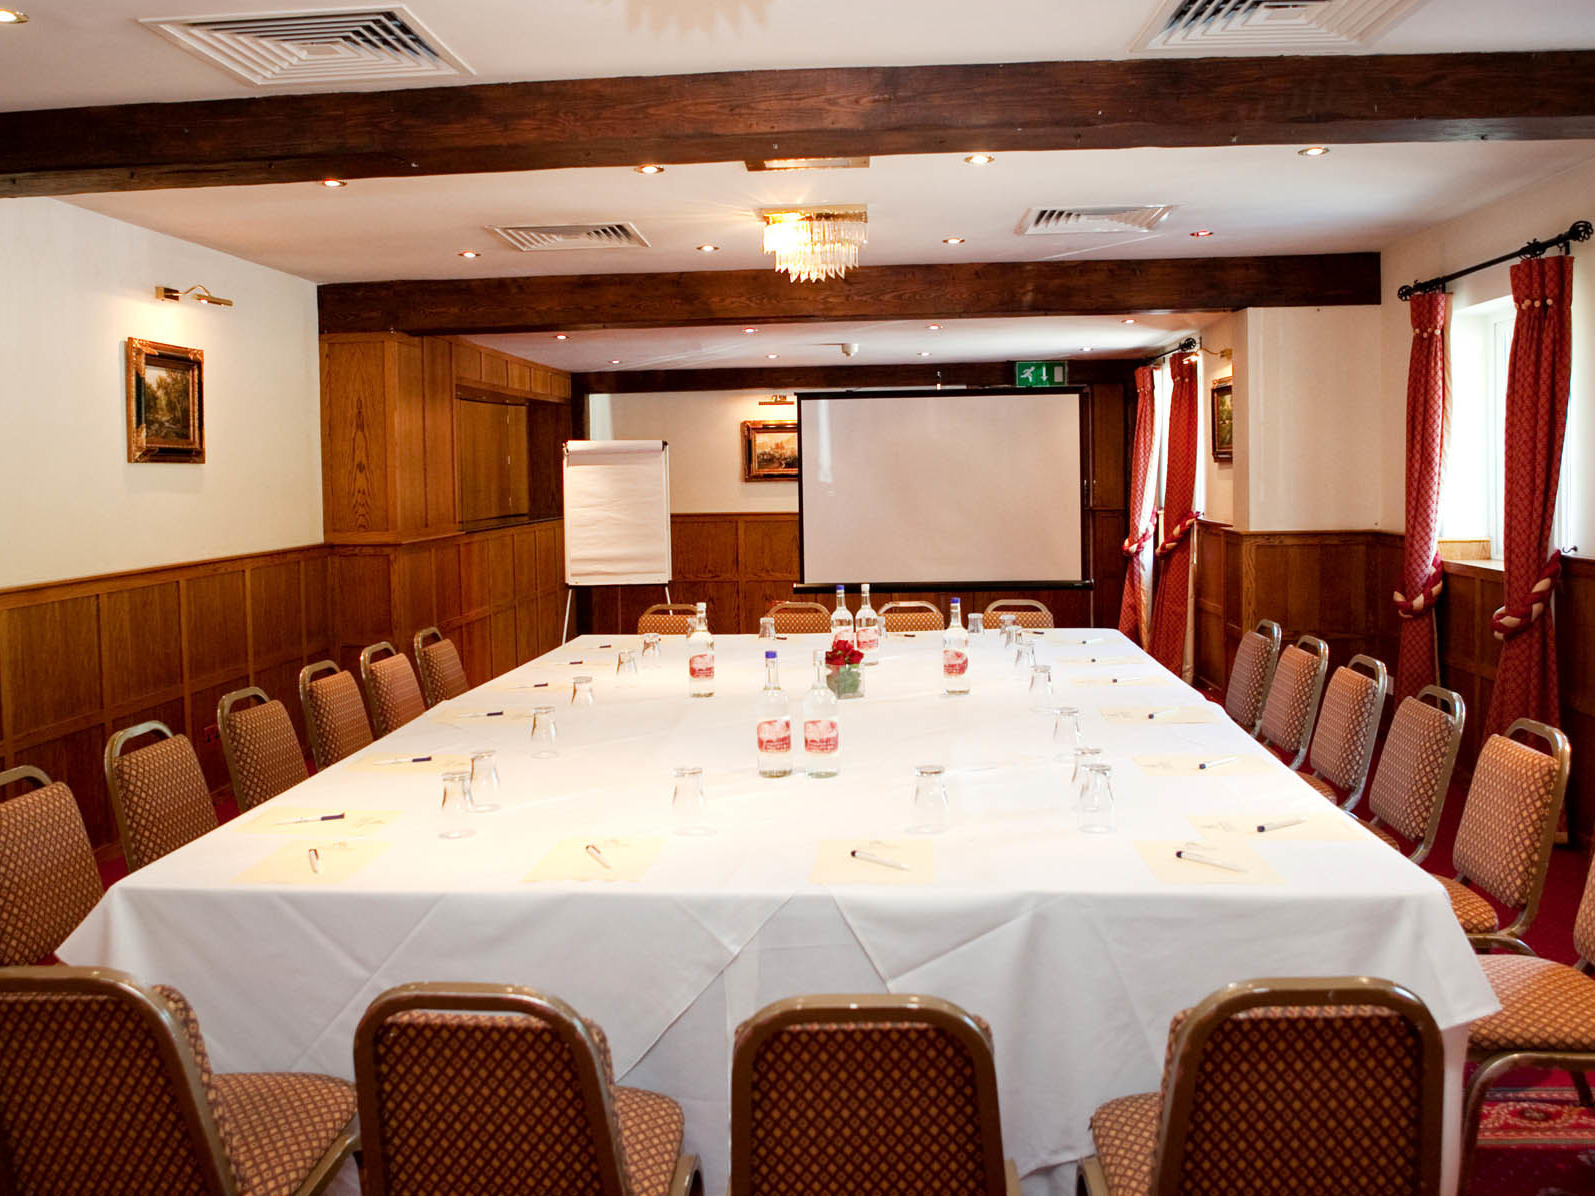 Windsor meeting room at Barn Hotel Ruislip near London